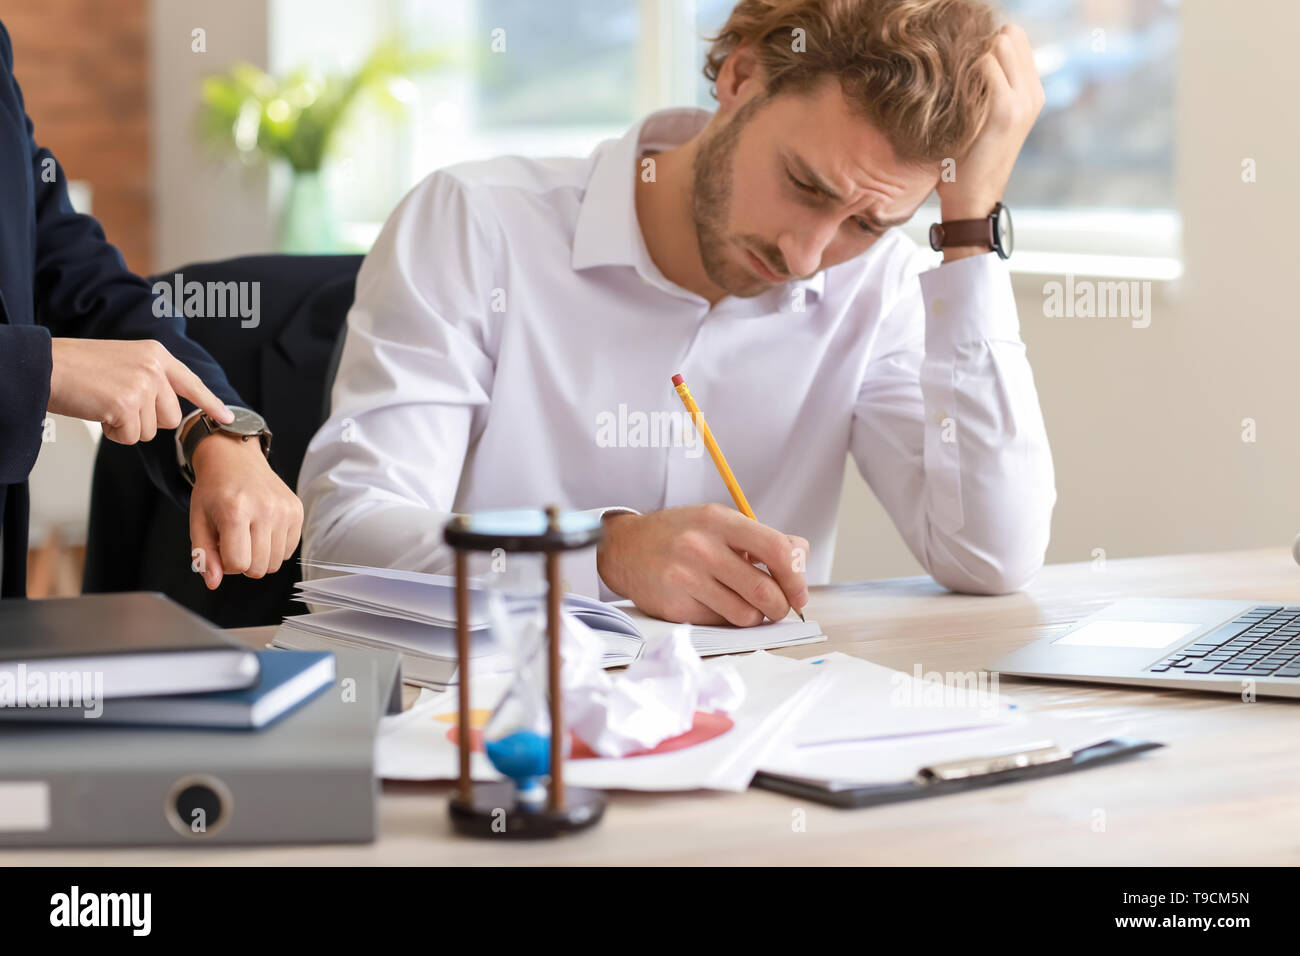 Boss reminding young man of duration in office - Stock Image